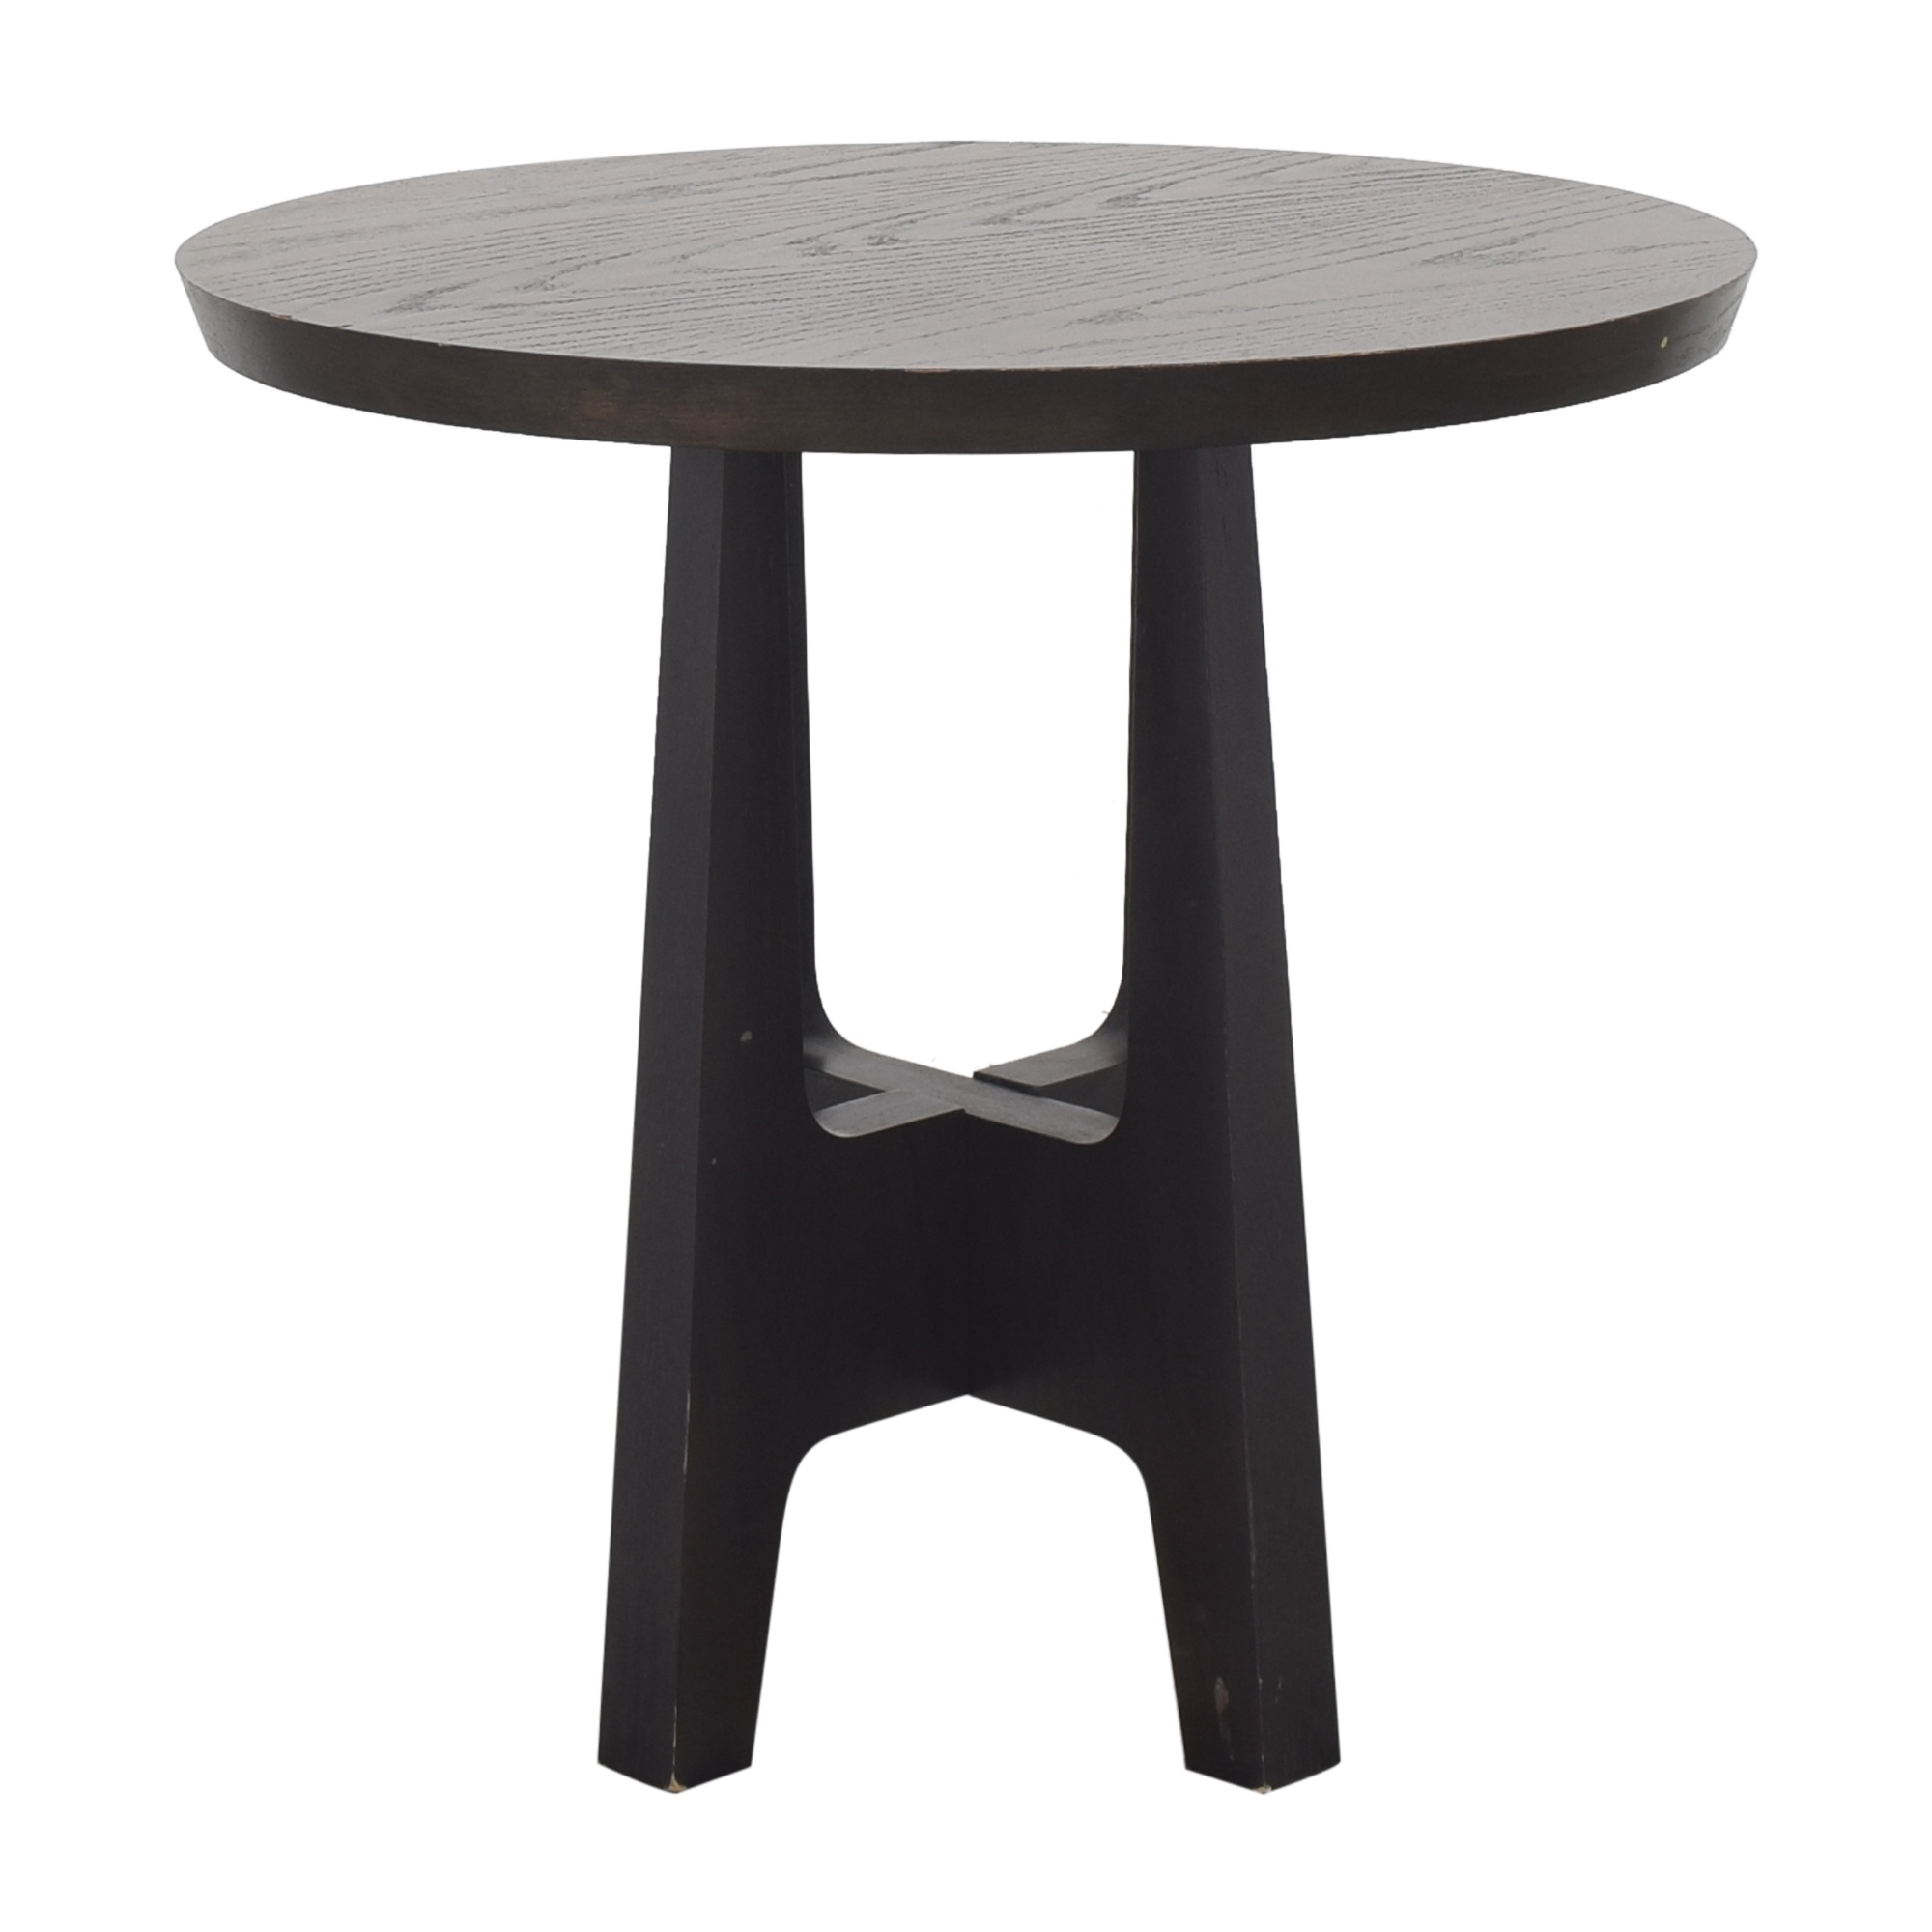 Crate & Barrel Crate & Barrel Round End Table pa